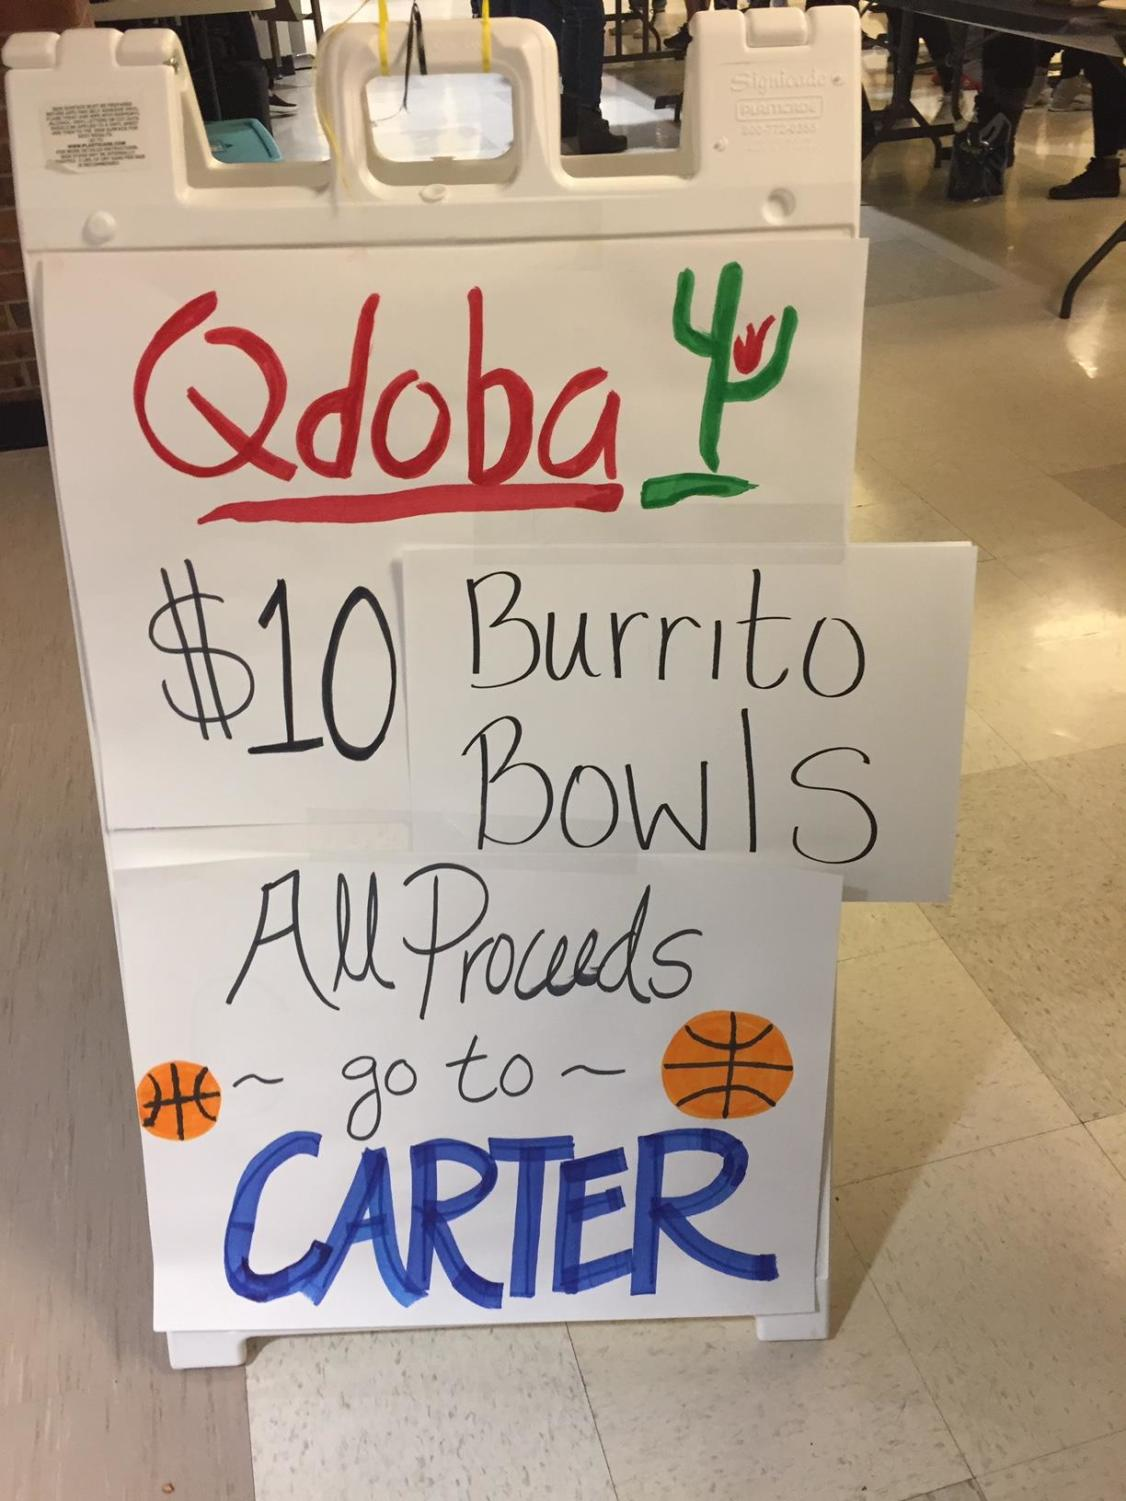 Qdoba bowls are sold at the Friday game on January 18 to raise money for the Edgerley family.